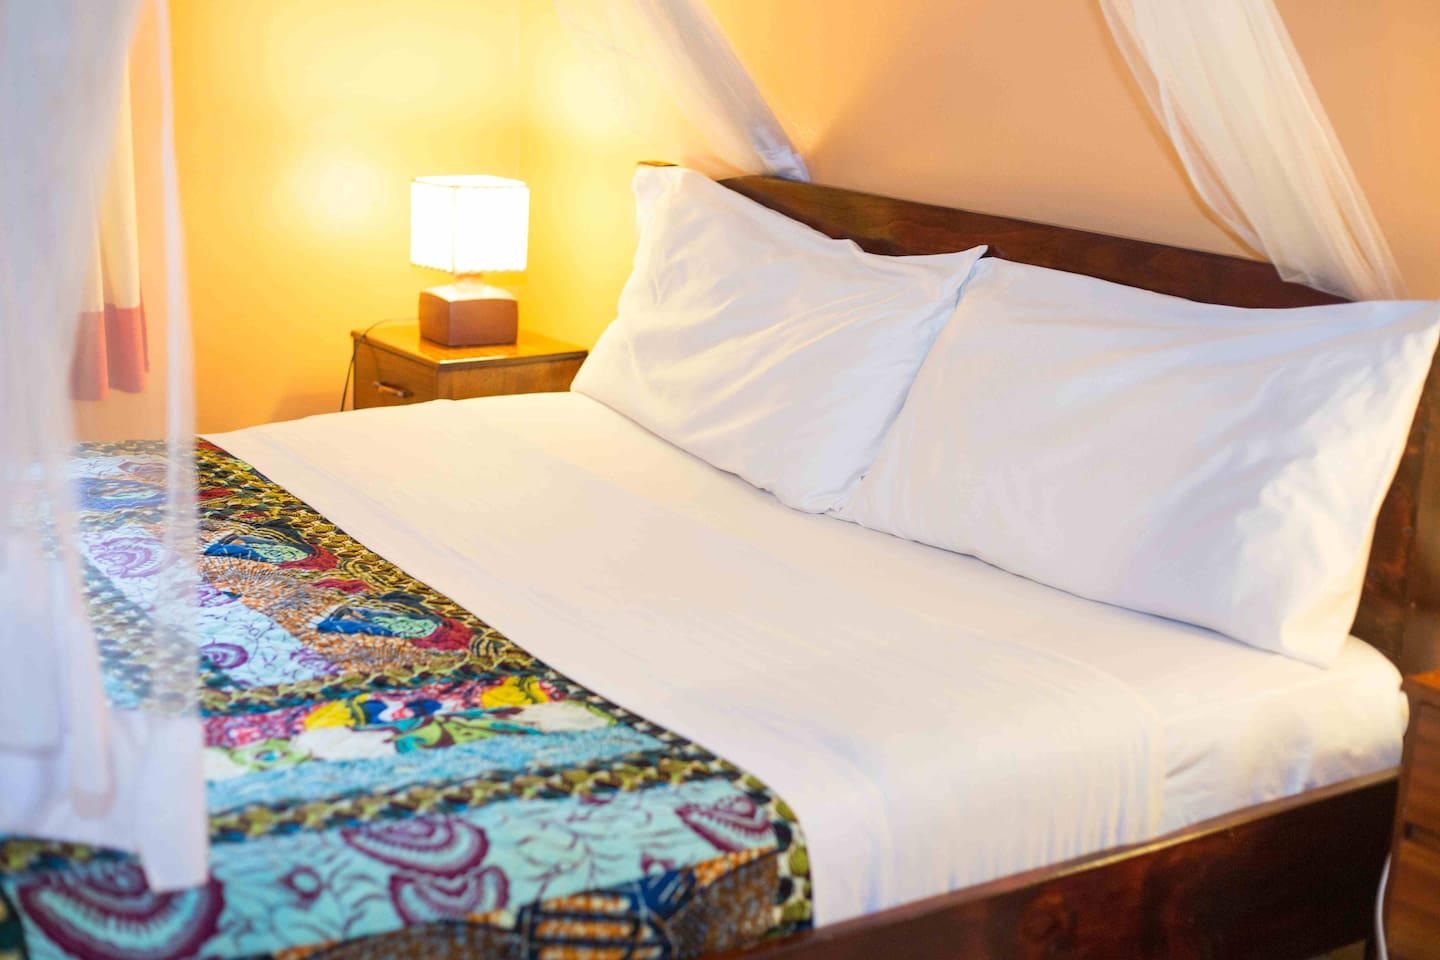 Izuba's colorful local bedspreads made by Rwandan women's cooperative TUBAHUMURIZE